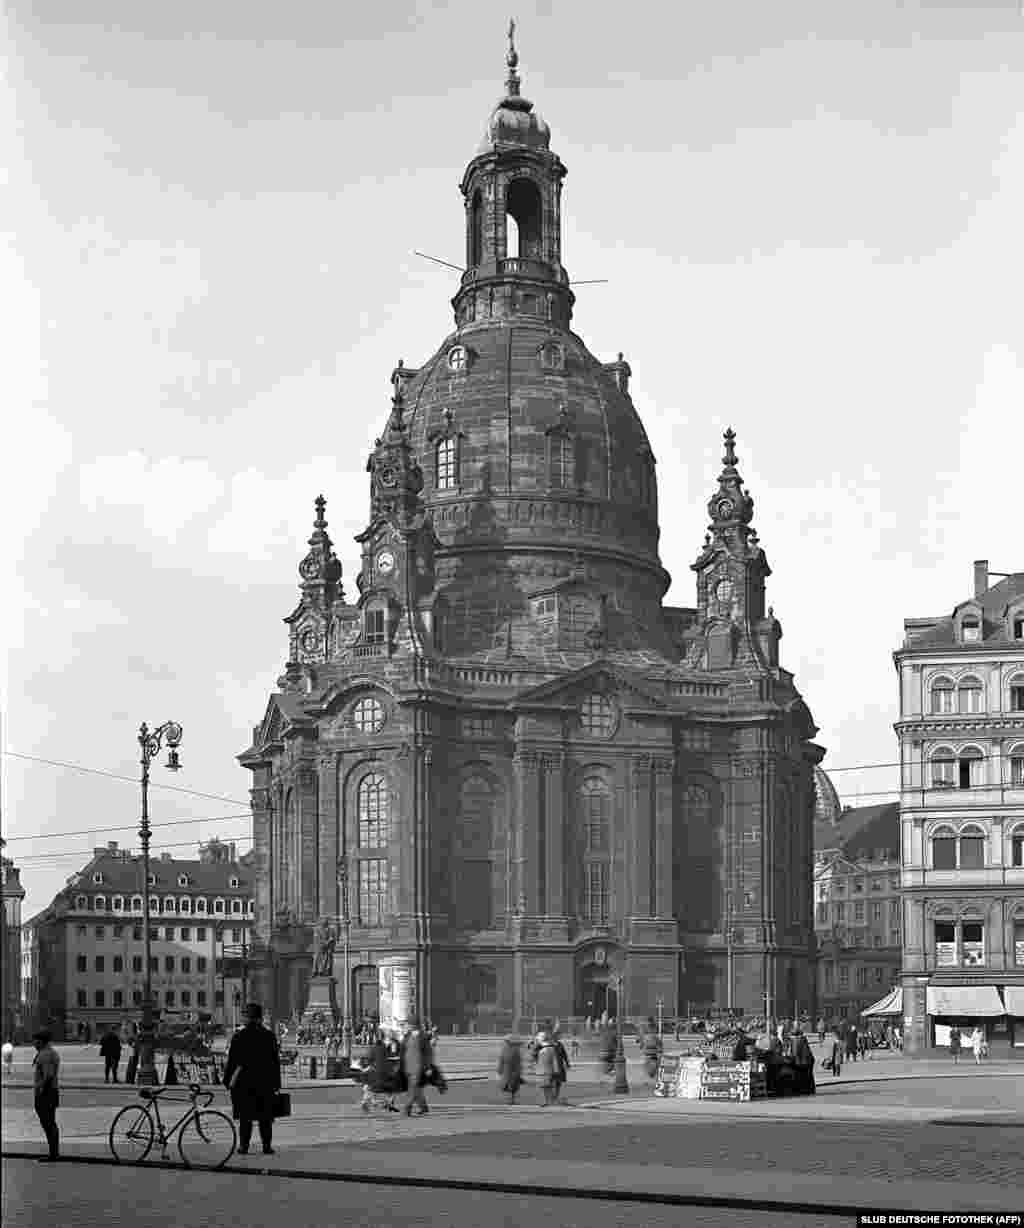 Dresden's Church Of Our Lady in 1930 -- shortly before the Nazis came to power in Germany and later plunged Europe into war.